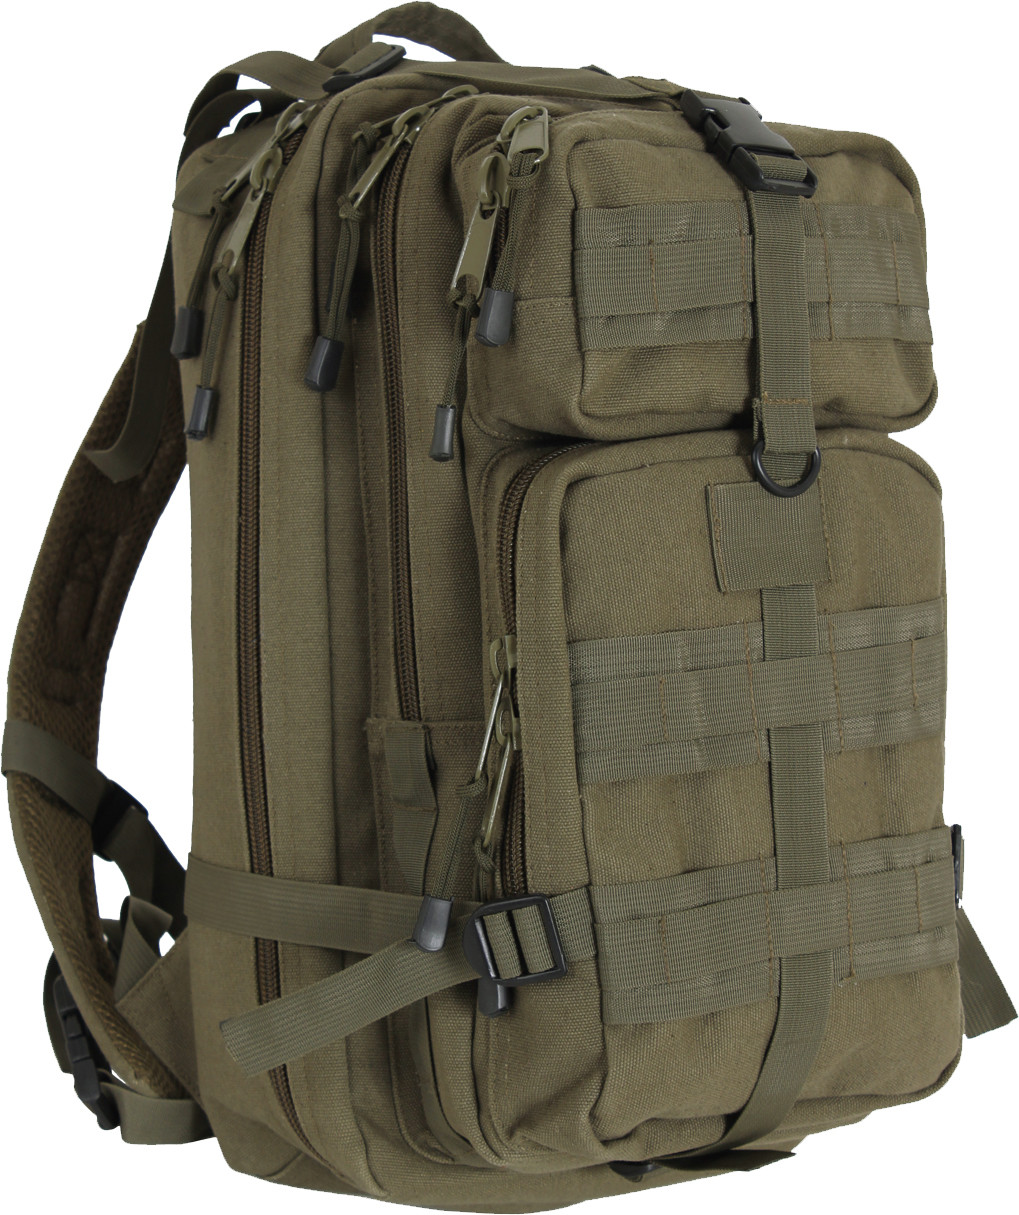 Olive Drab Military MOLLE Medium Transport Tactical Pack Backpack 460c7dd0db5